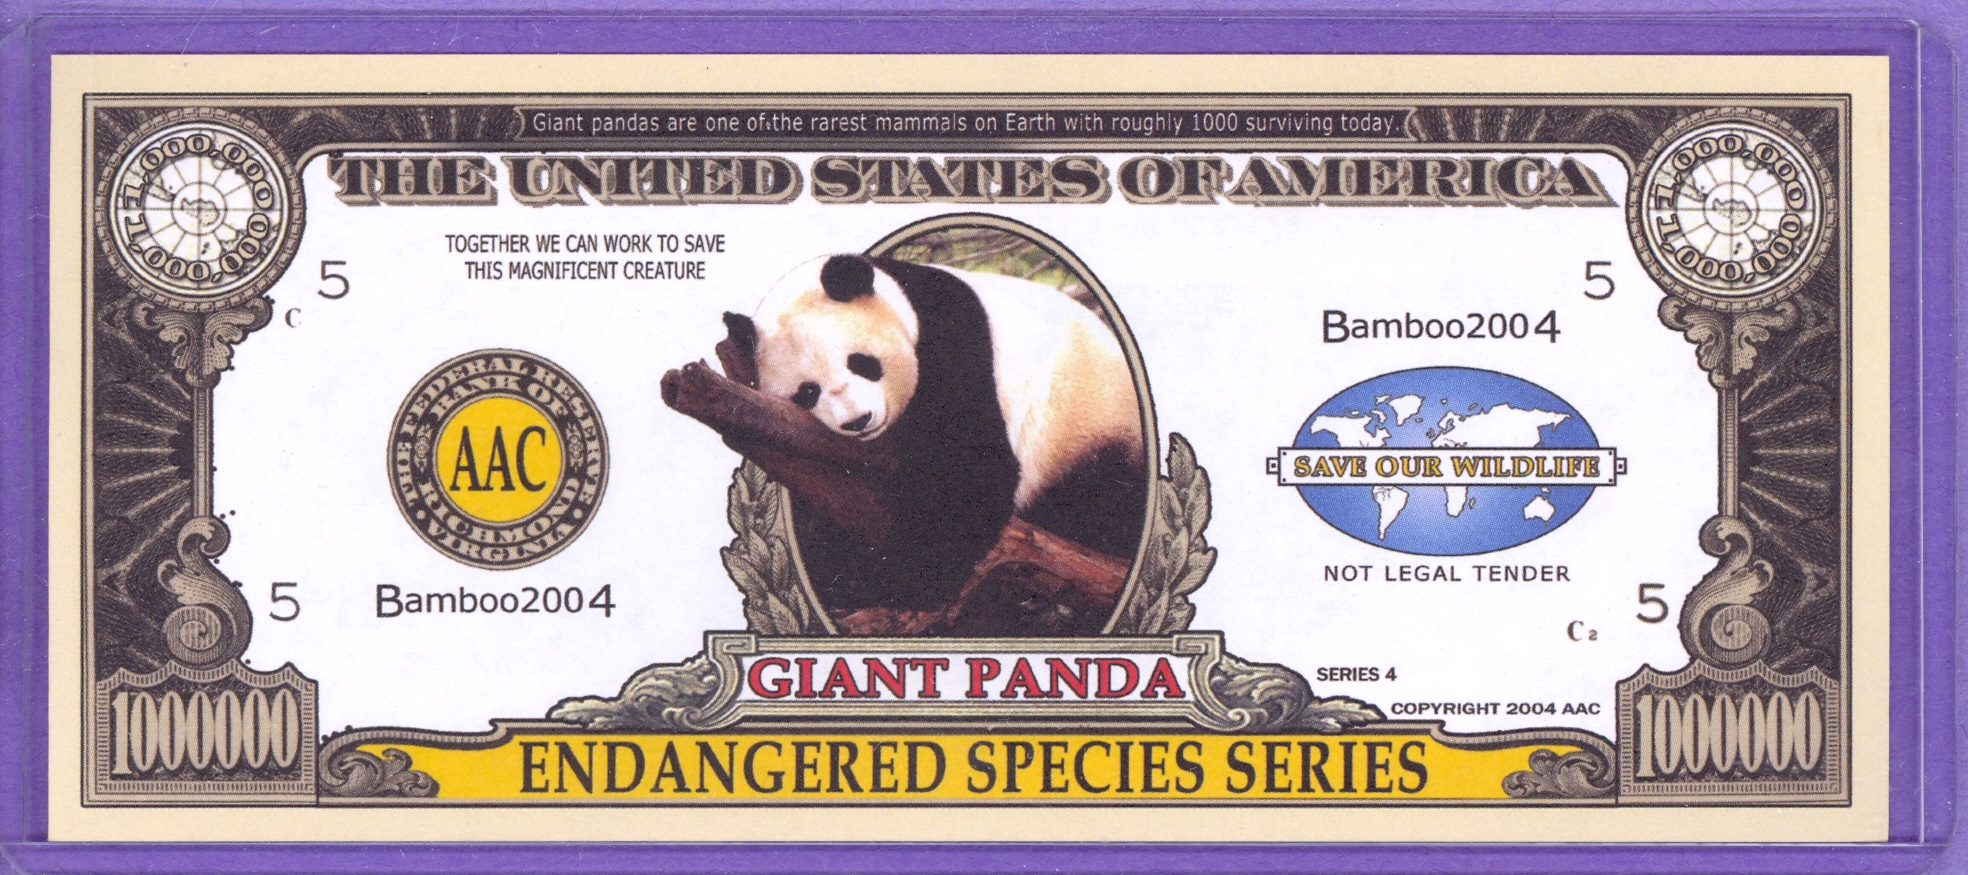 Giant Panda $1,000,000 Novelty Note - Endangered Species